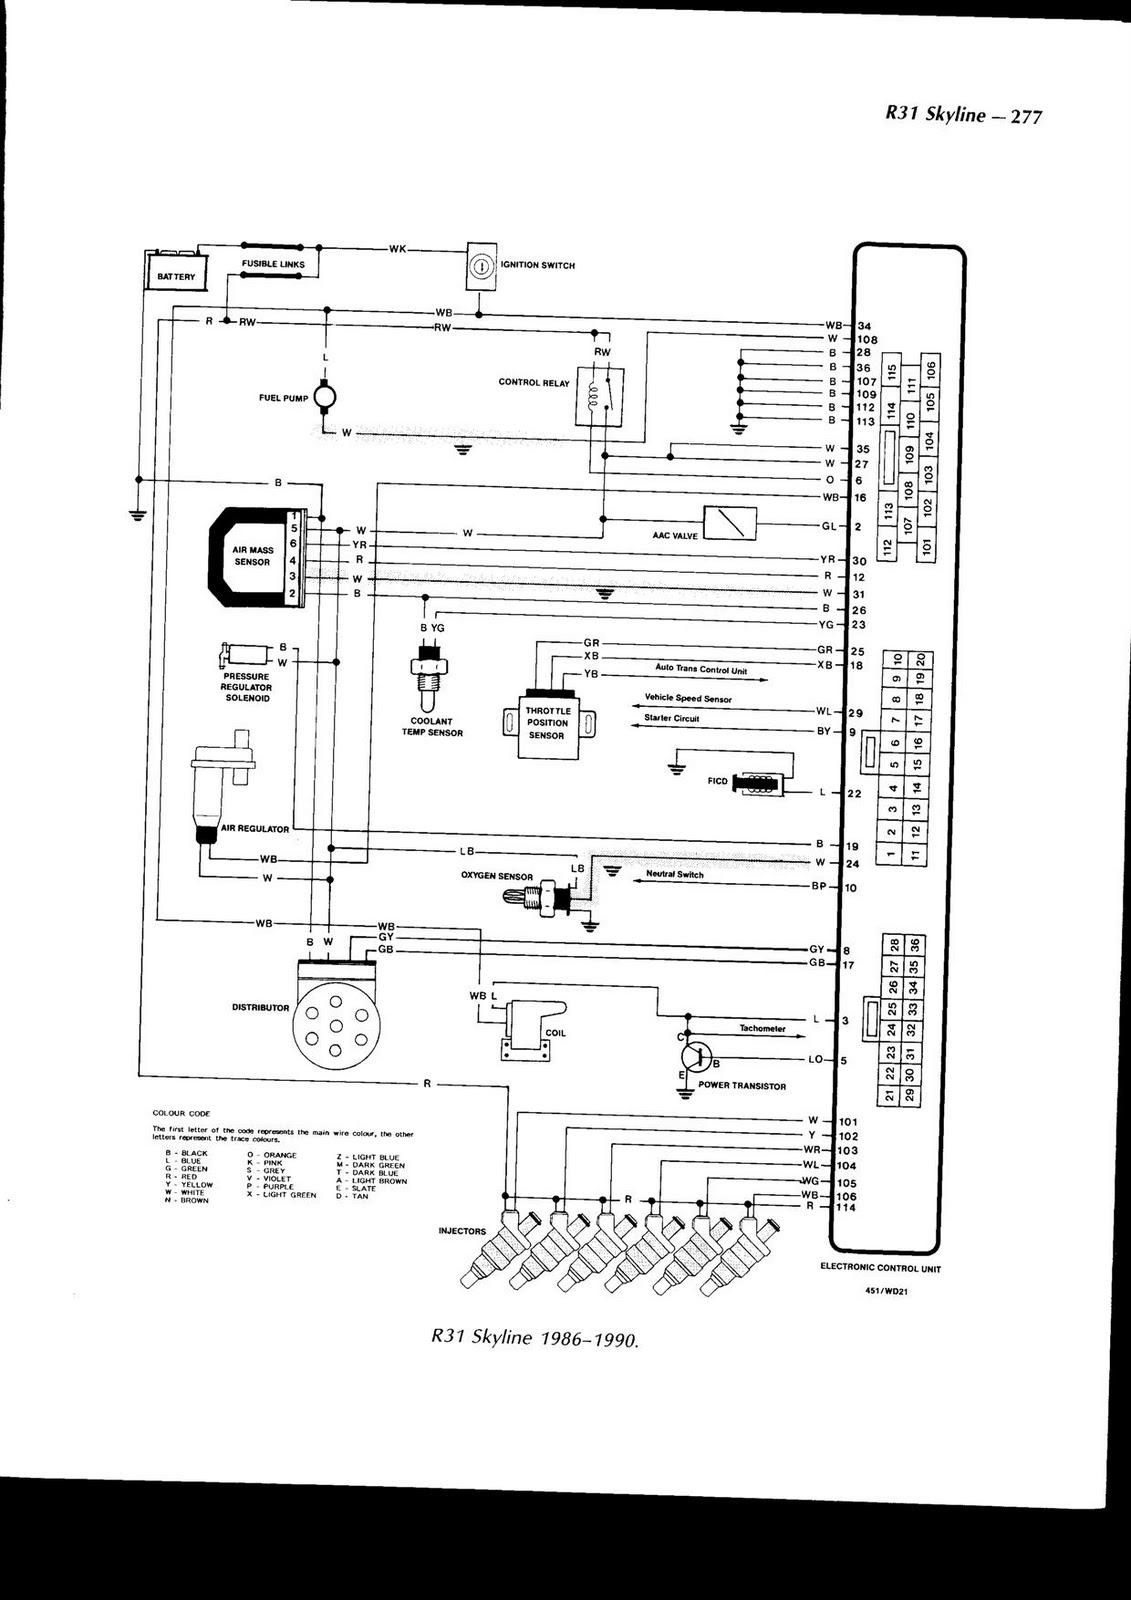 RB30_R31_Wiring_Diagram rb30 wiring diagrams 280zx project vl wiring diagram at panicattacktreatment.co